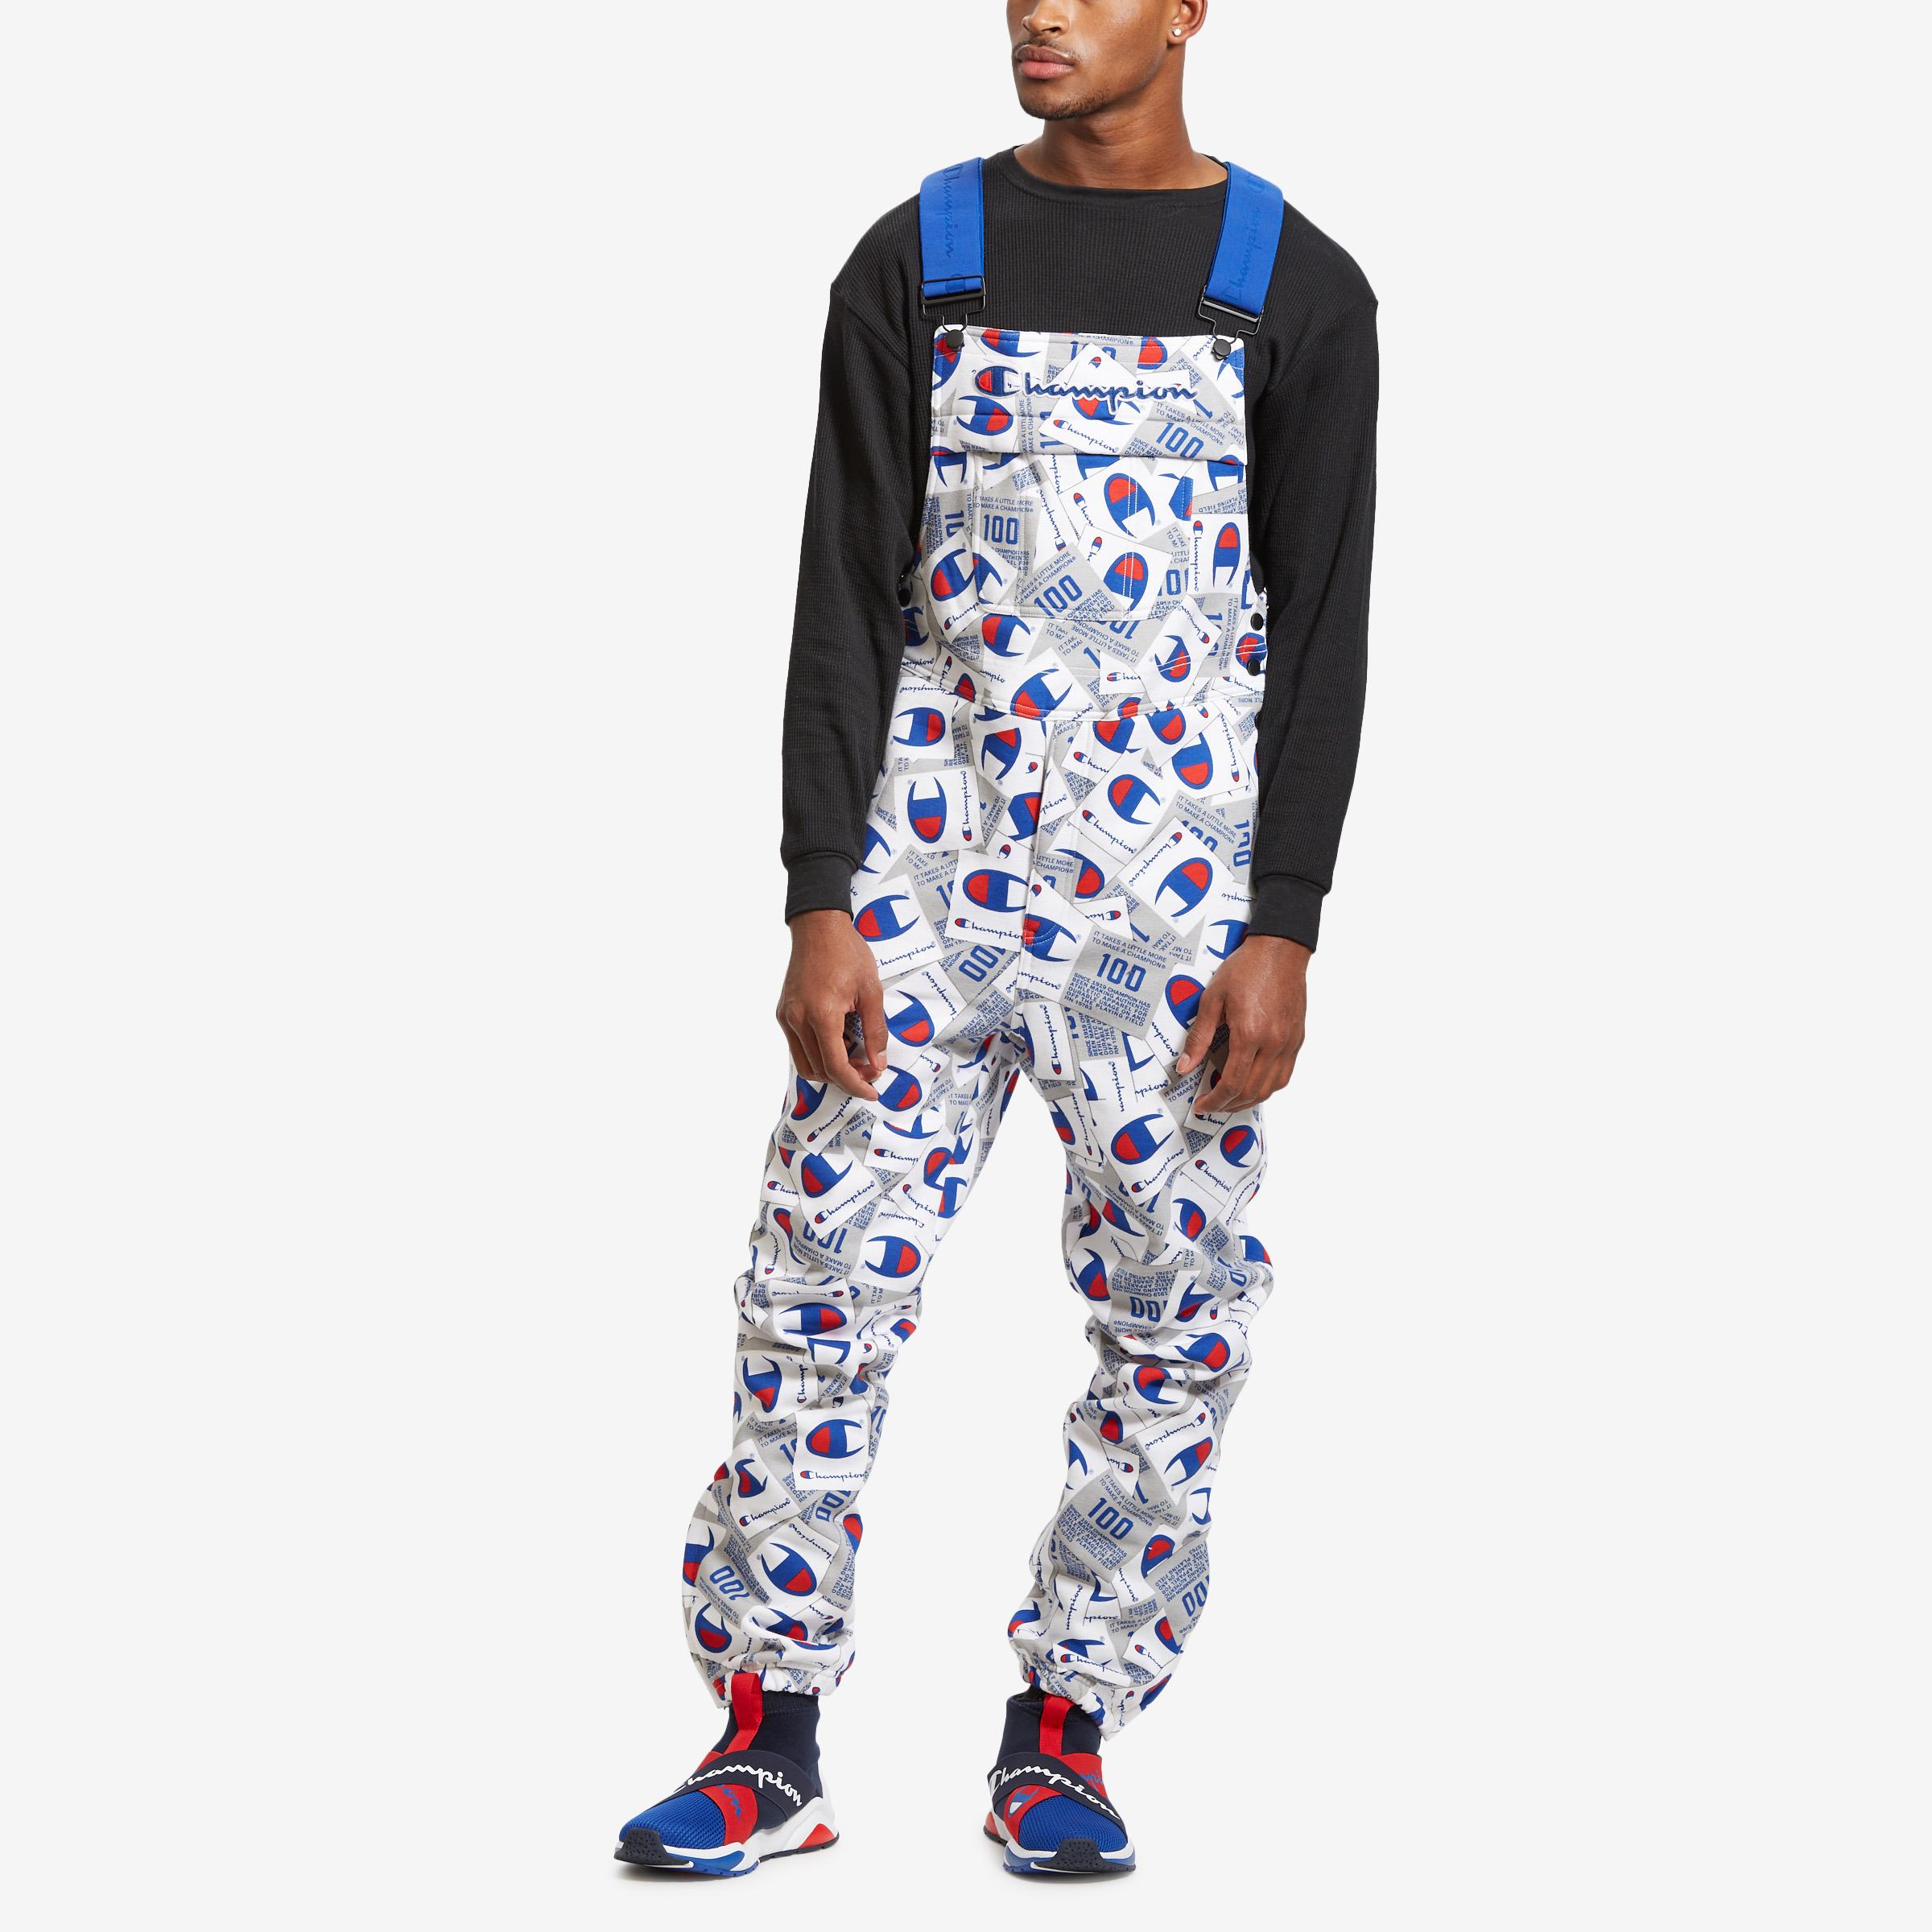 Men's Super Fleece Overalls